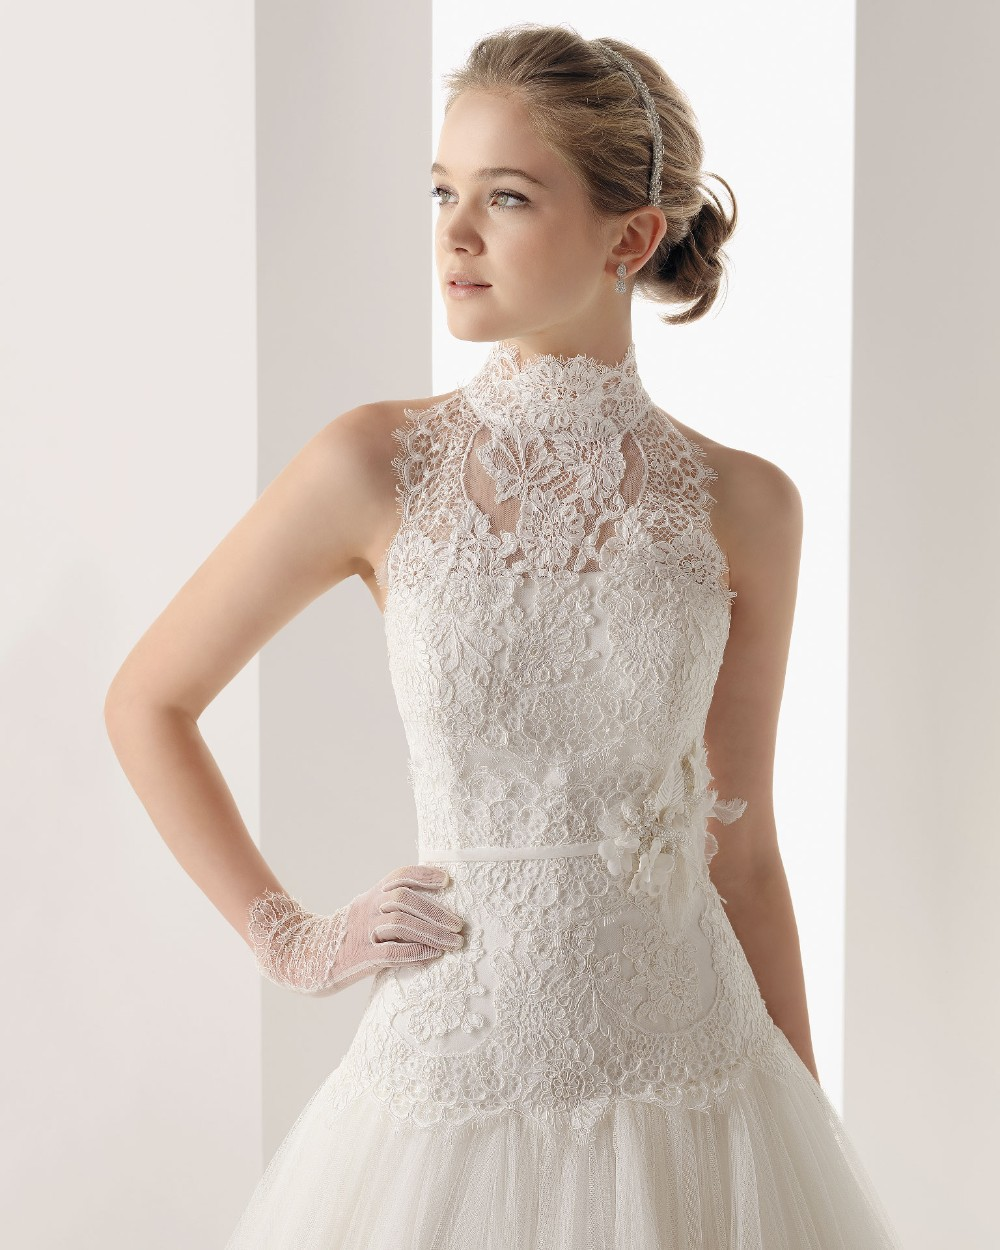 Hot sale new sexy brides highneck 2015 Bridal Gown romantic tulle fashionable flower sashes vestido de noiva lace wedding dress in Wedding Dresses from Weddings Events